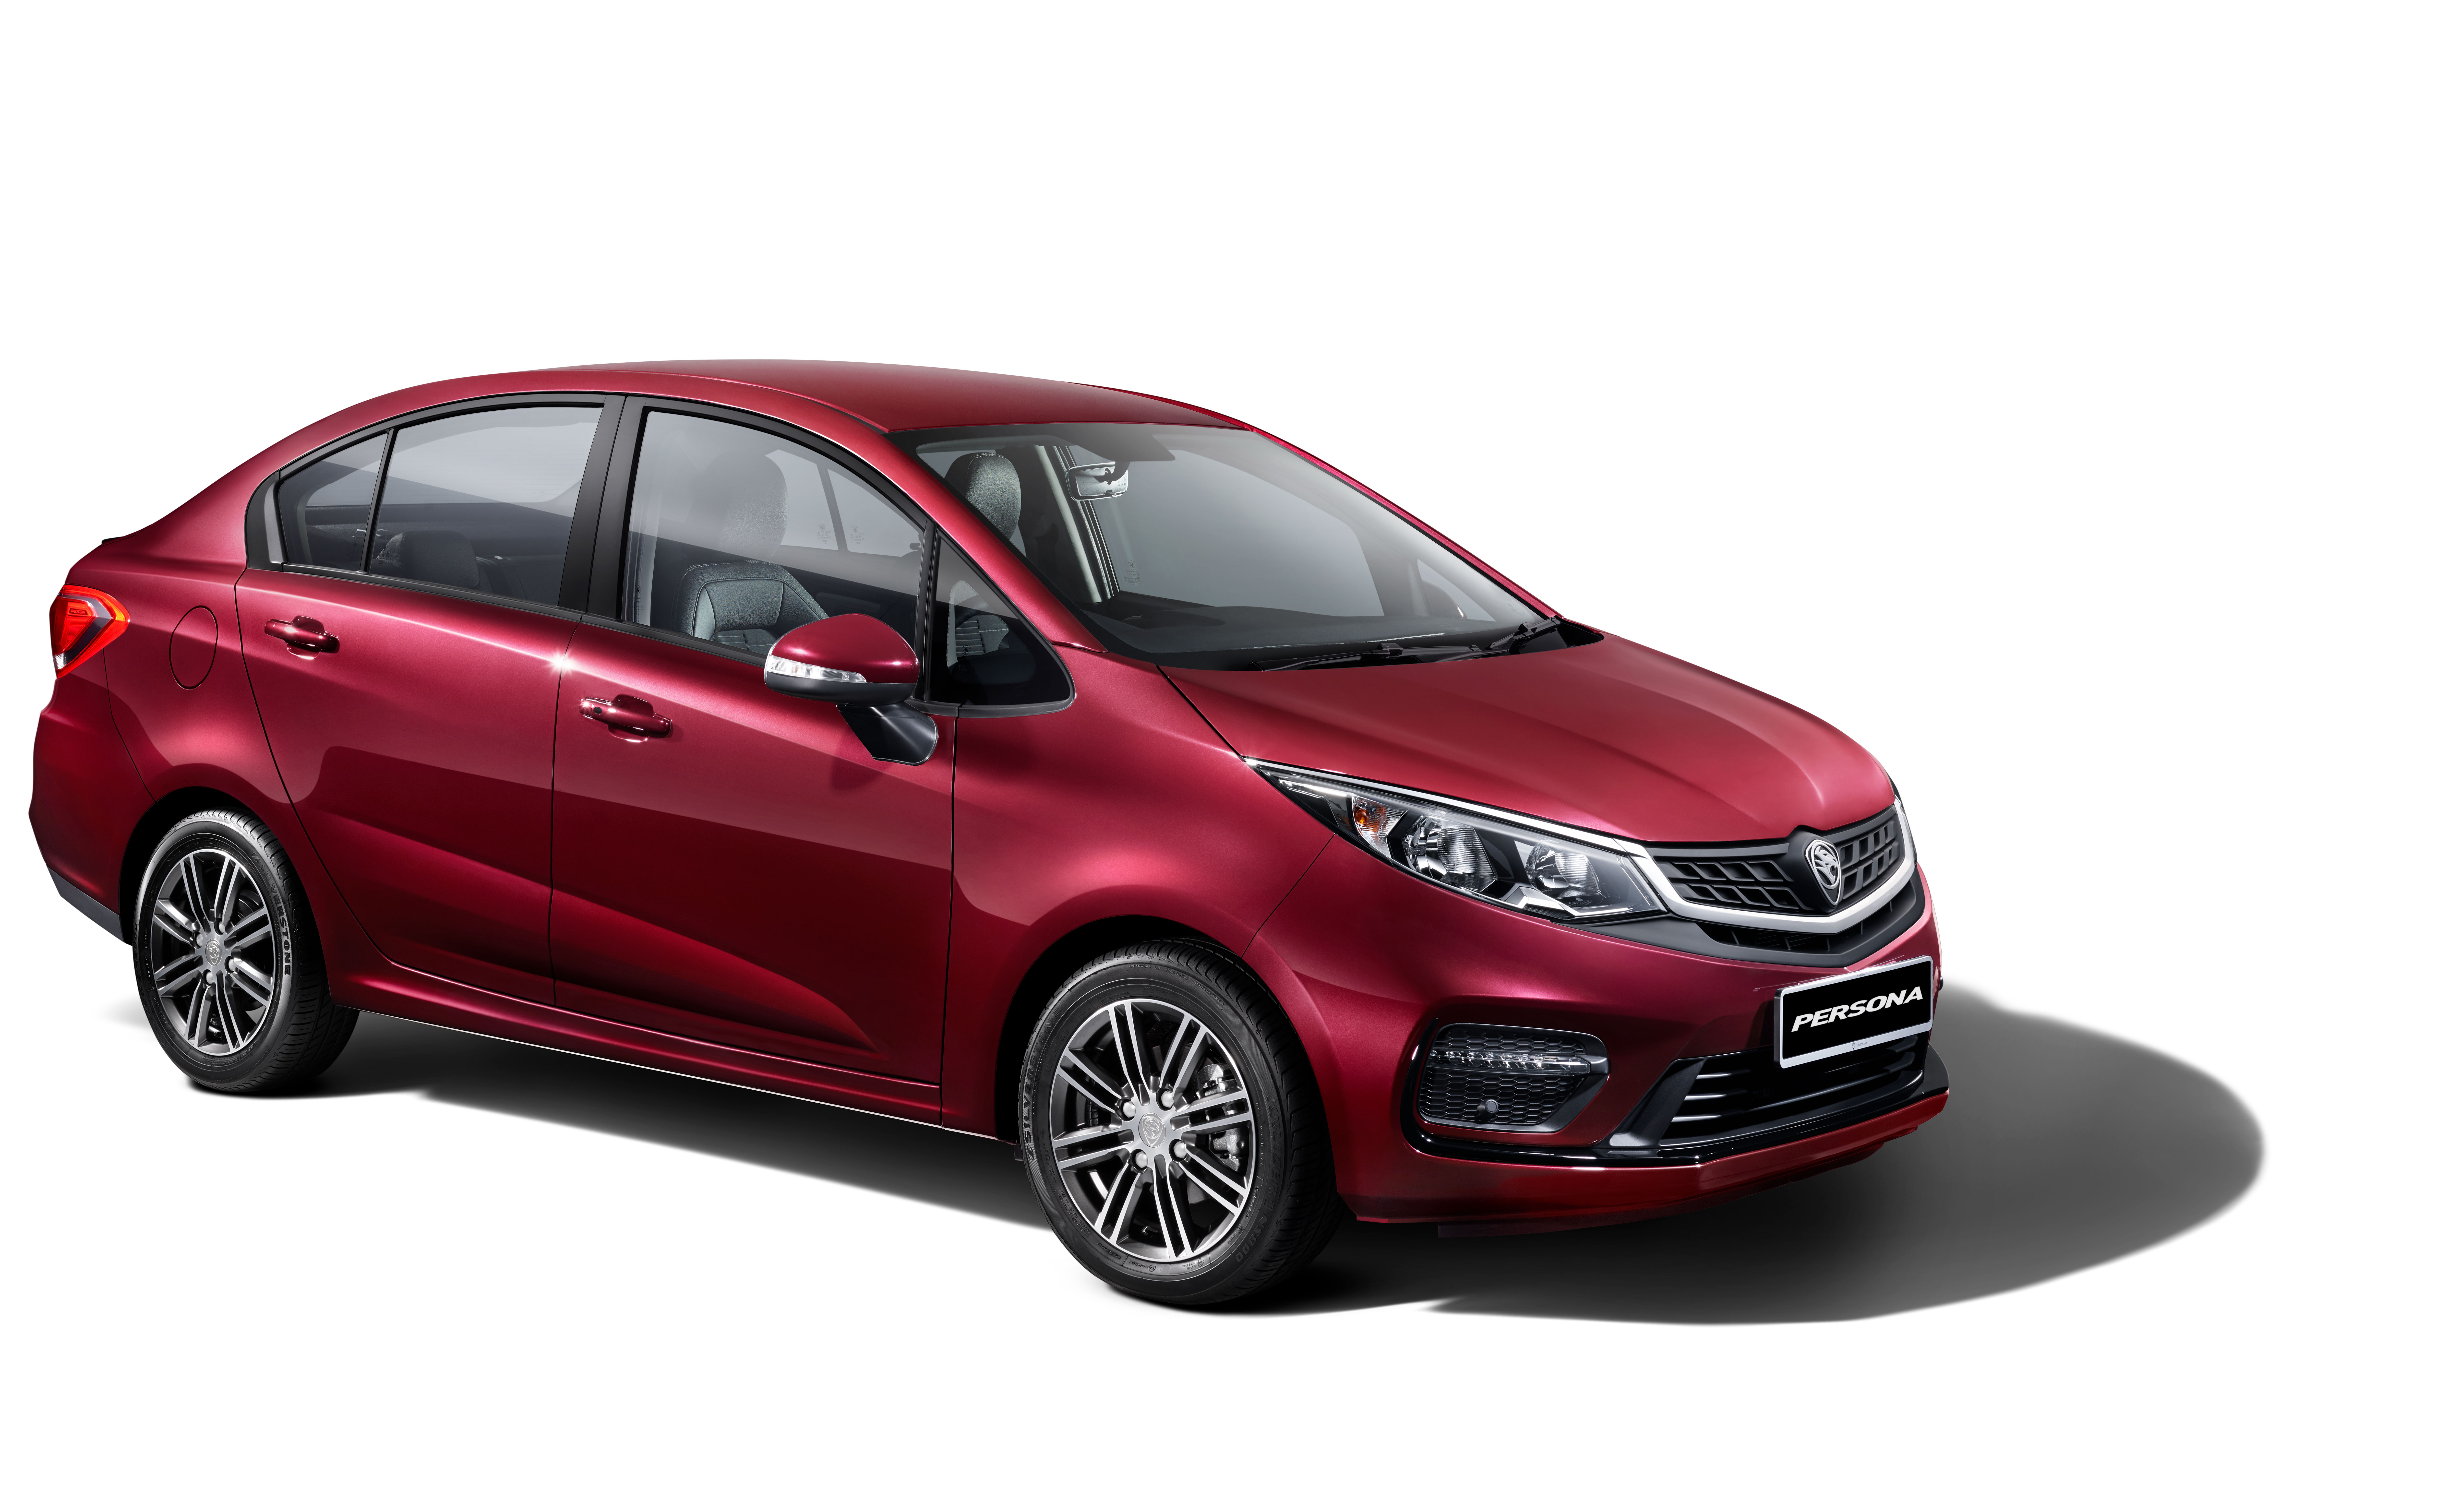 2019 Proton Persona facelift launched – fr RM42,600 Image #1031729